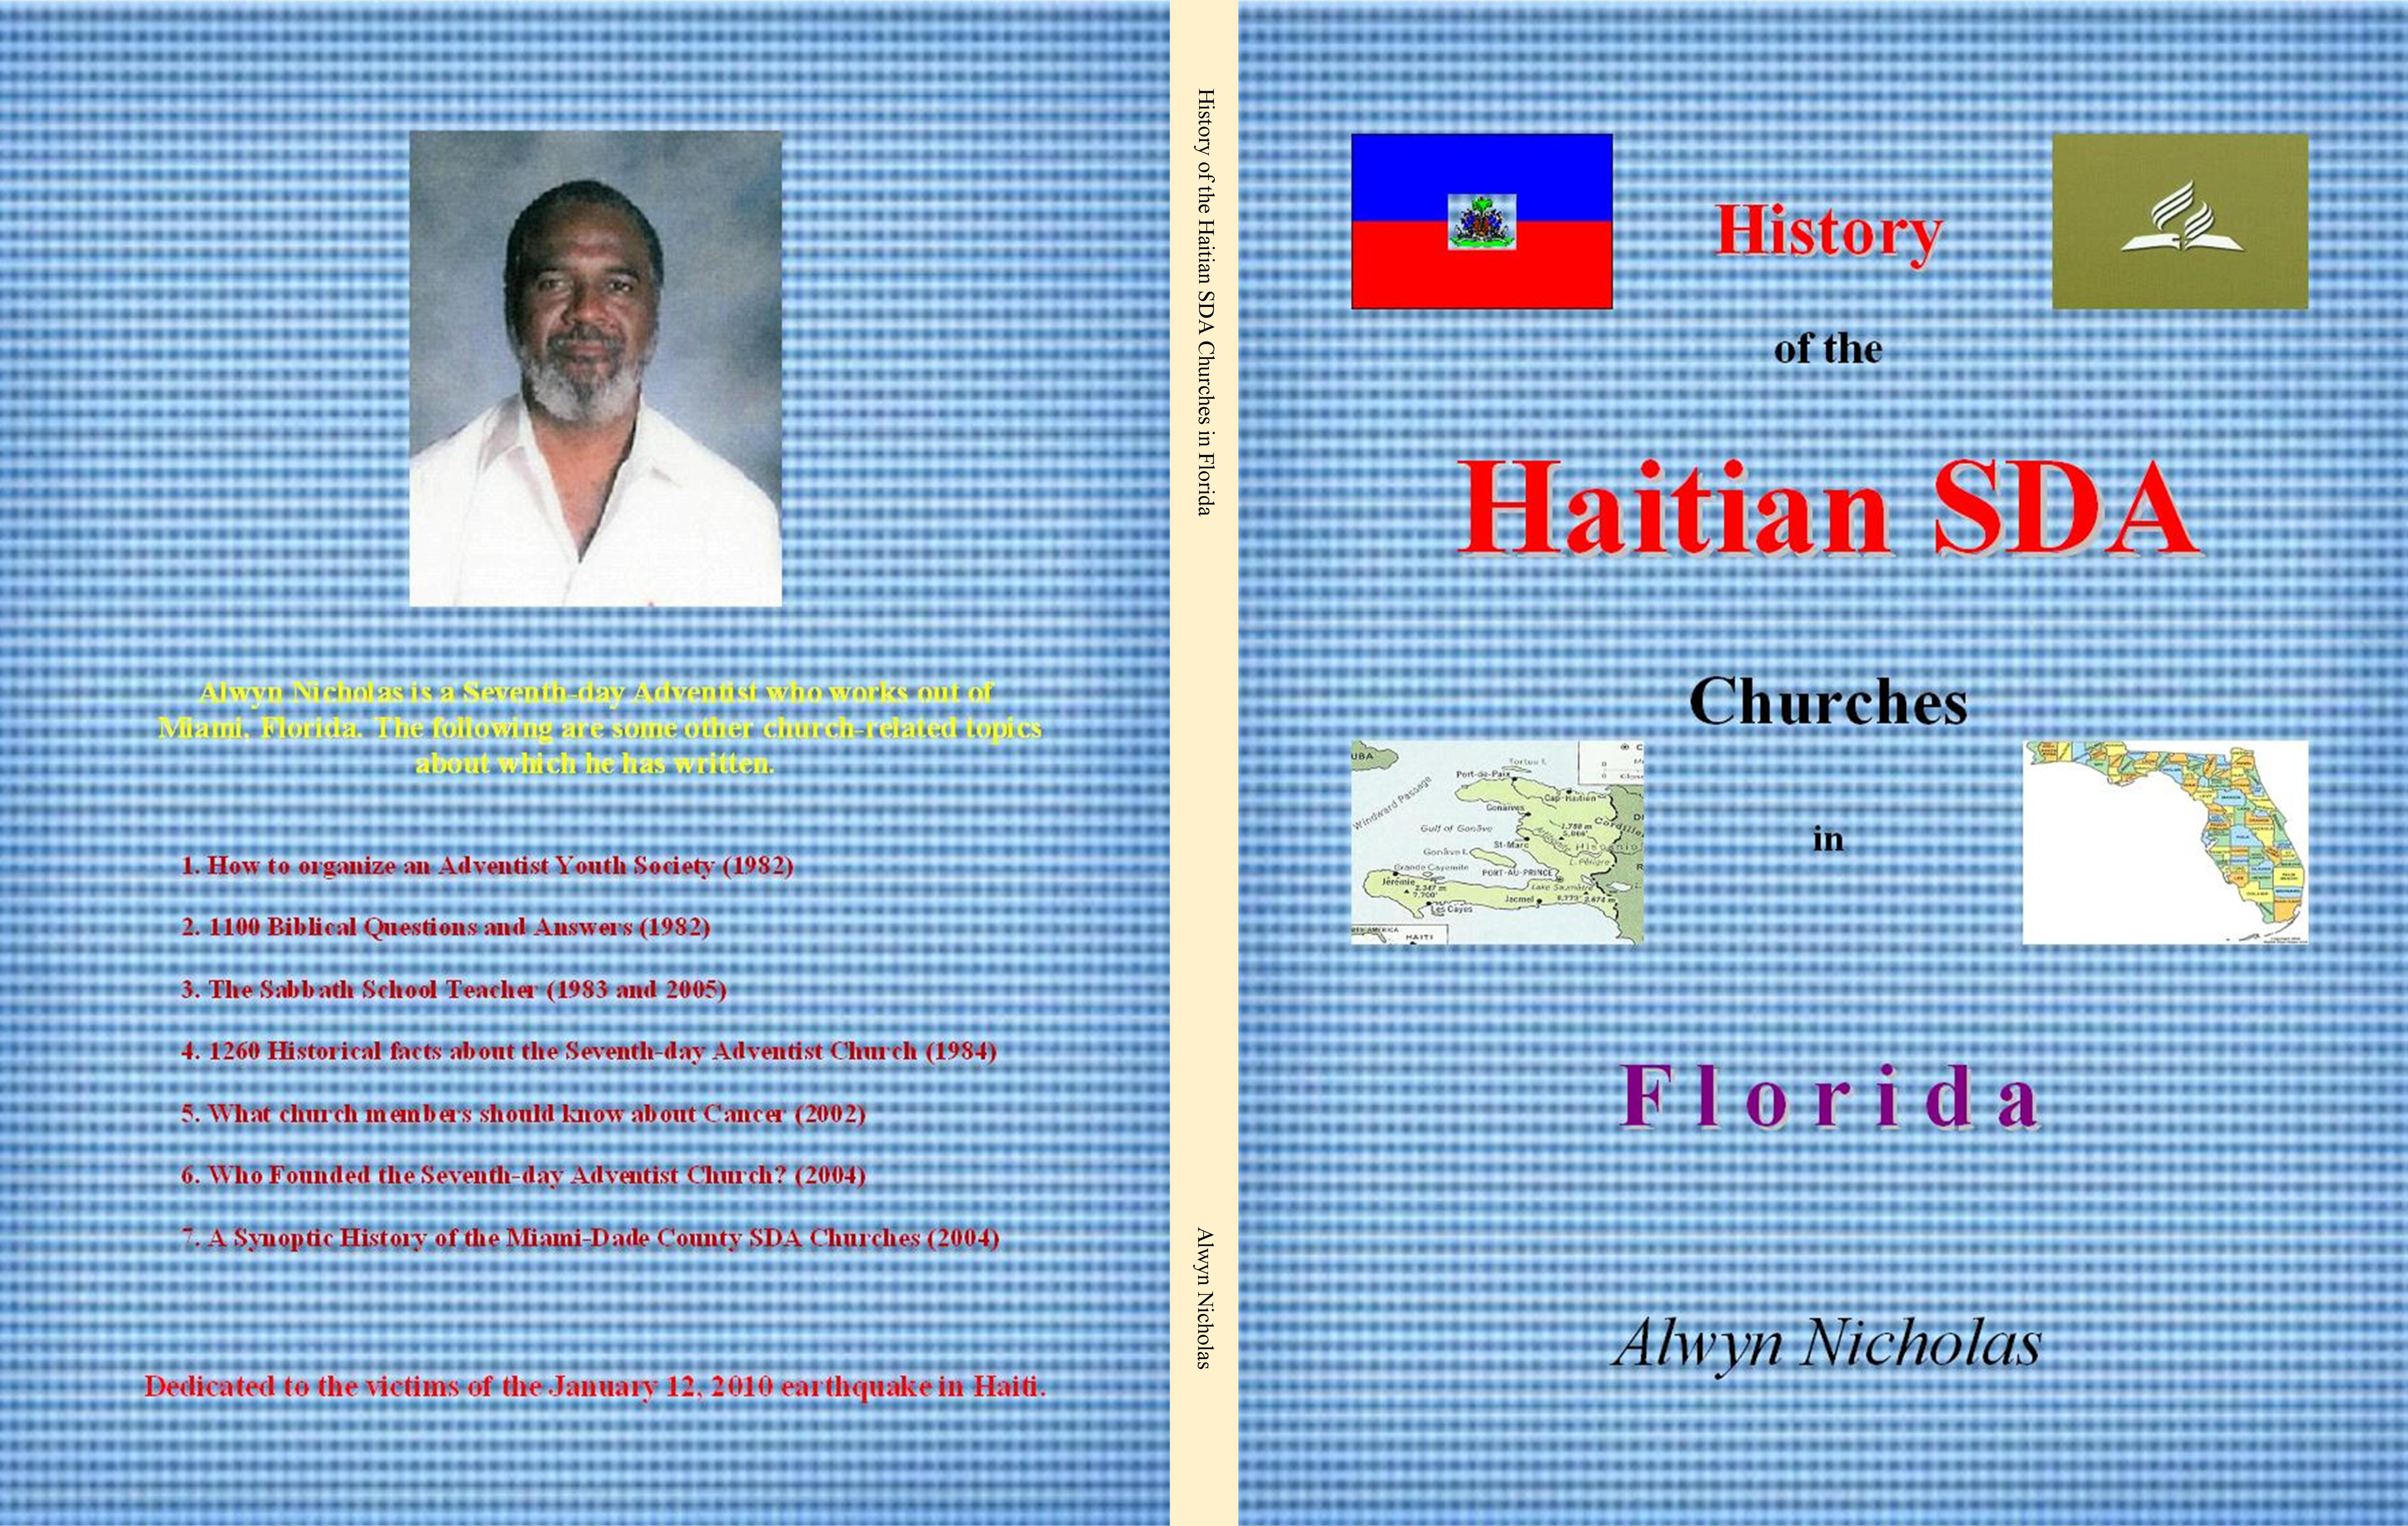 History of the Haitian SDA Churches in Florida cover image